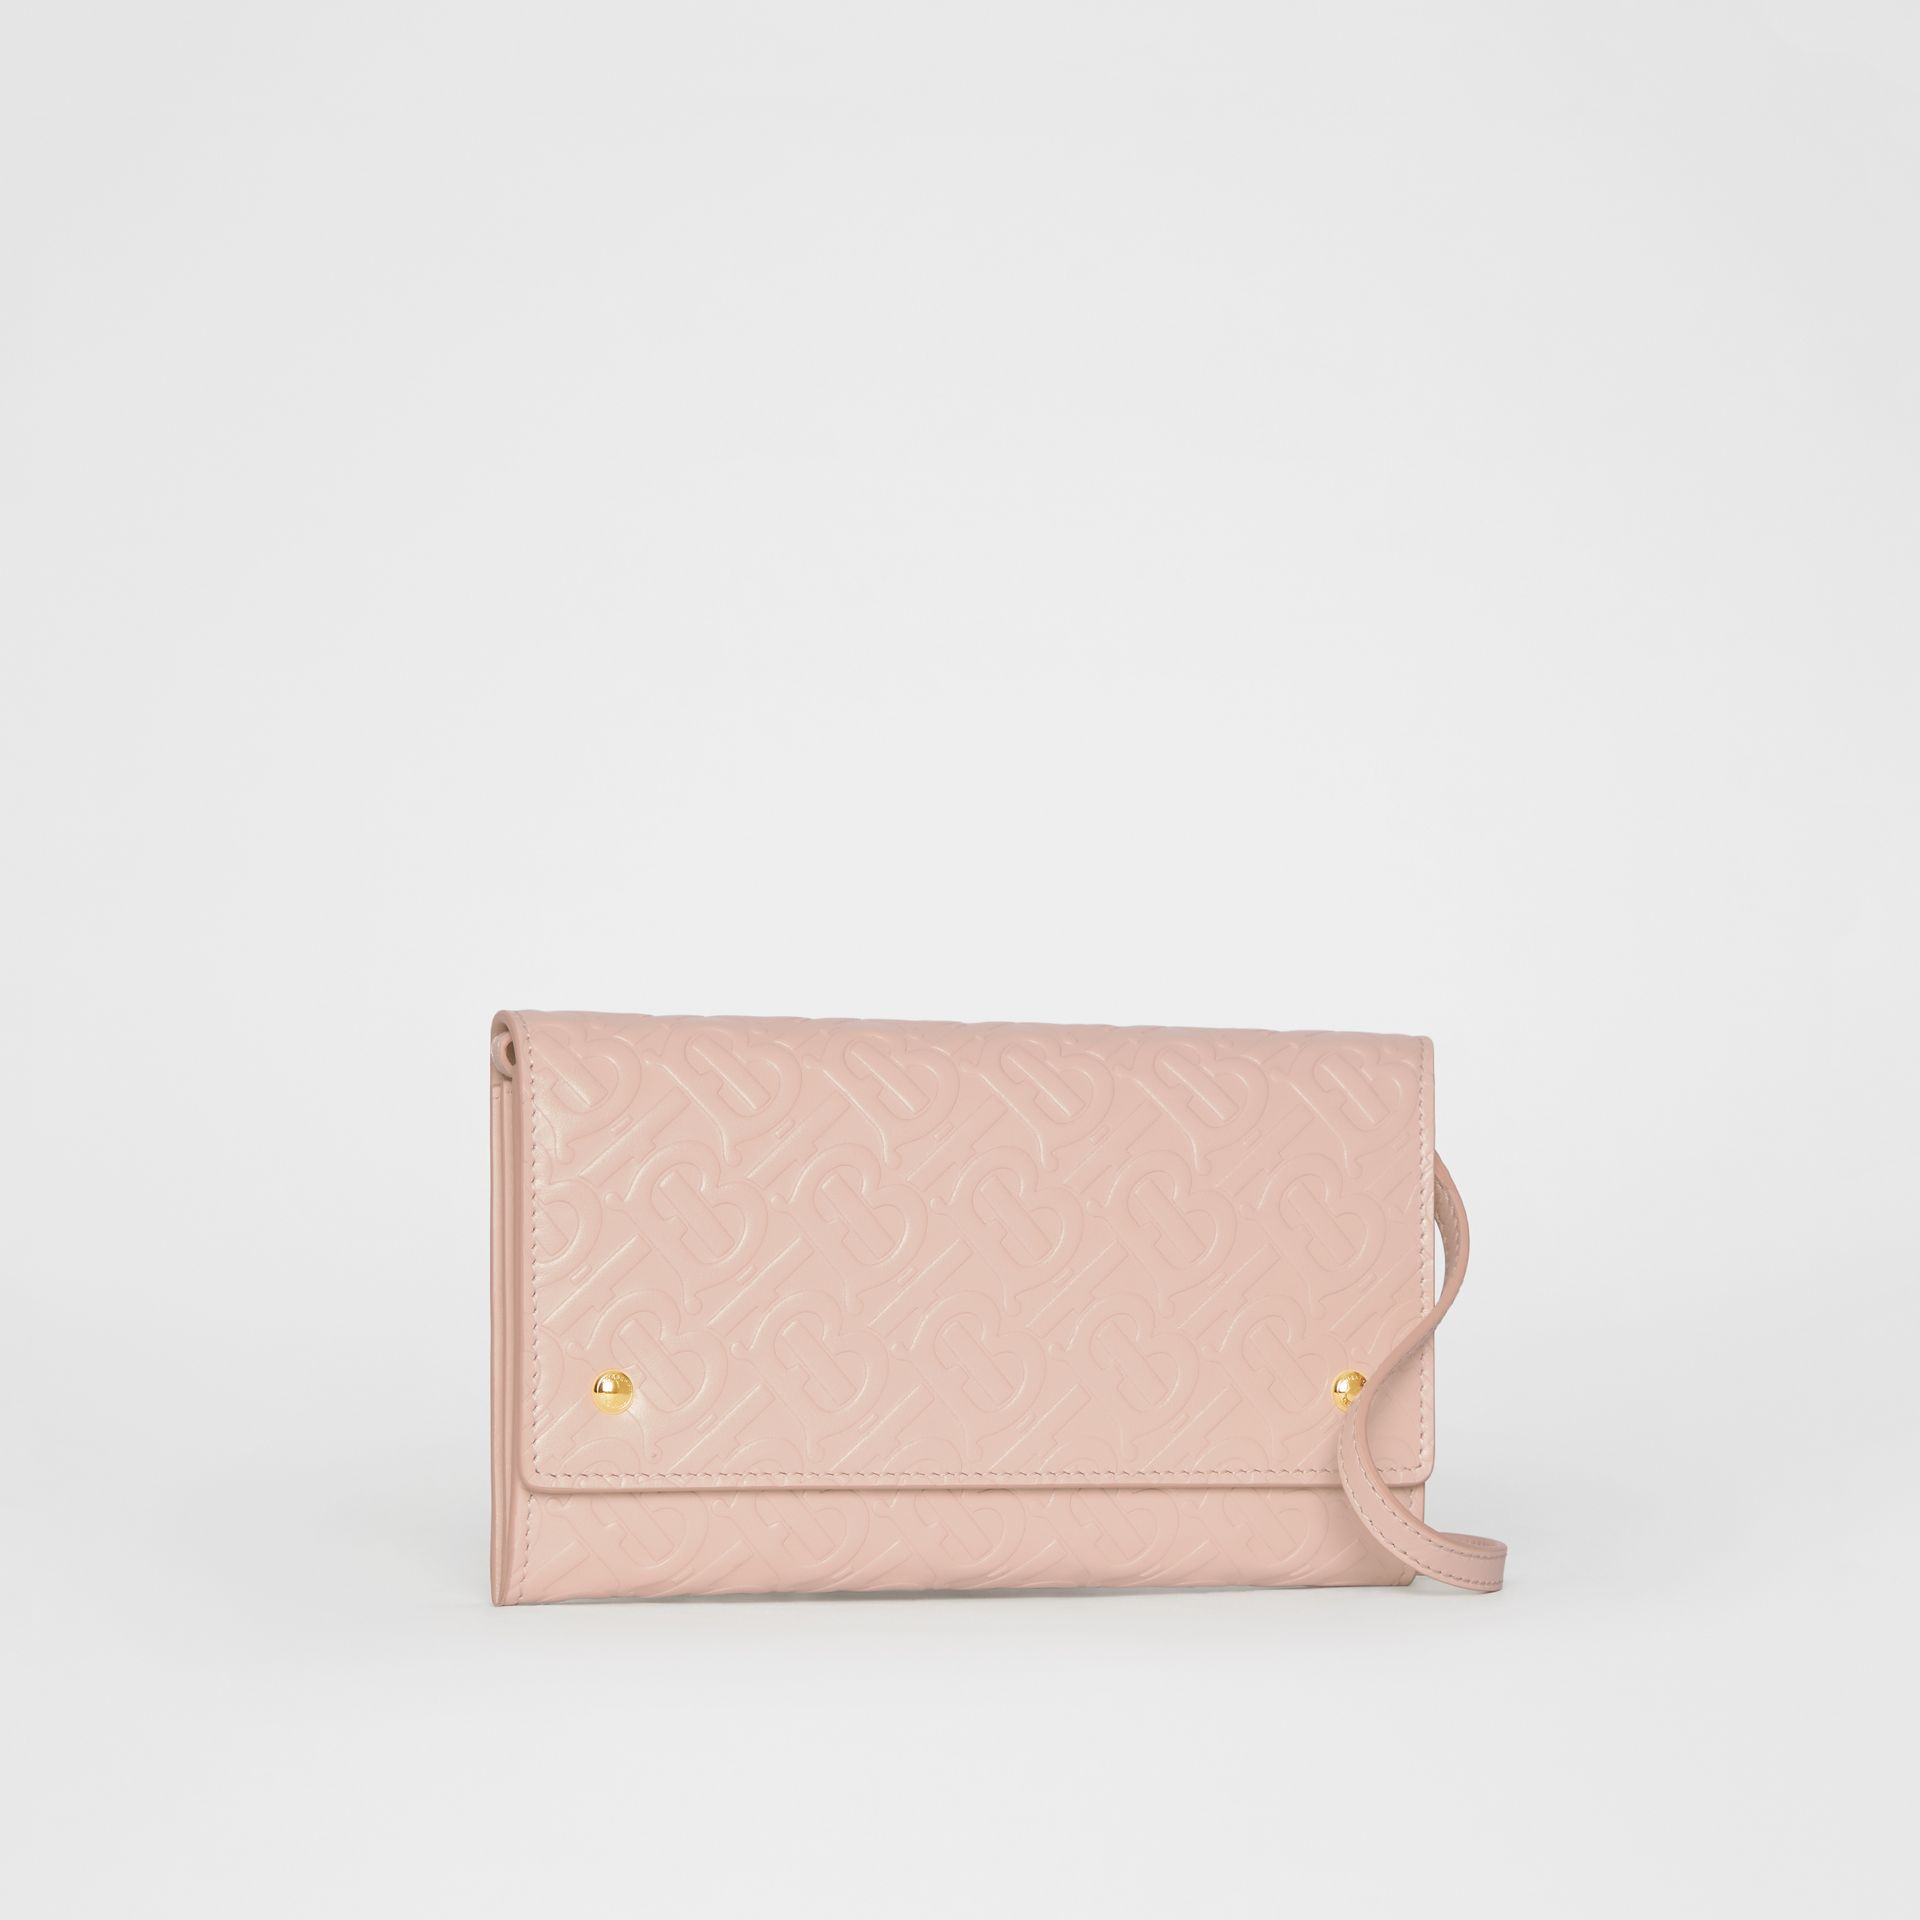 Portefeuille en cuir Monogram et sangle amovible (Beige Rose) - Femme | Burberry Canada - photo de la galerie 7